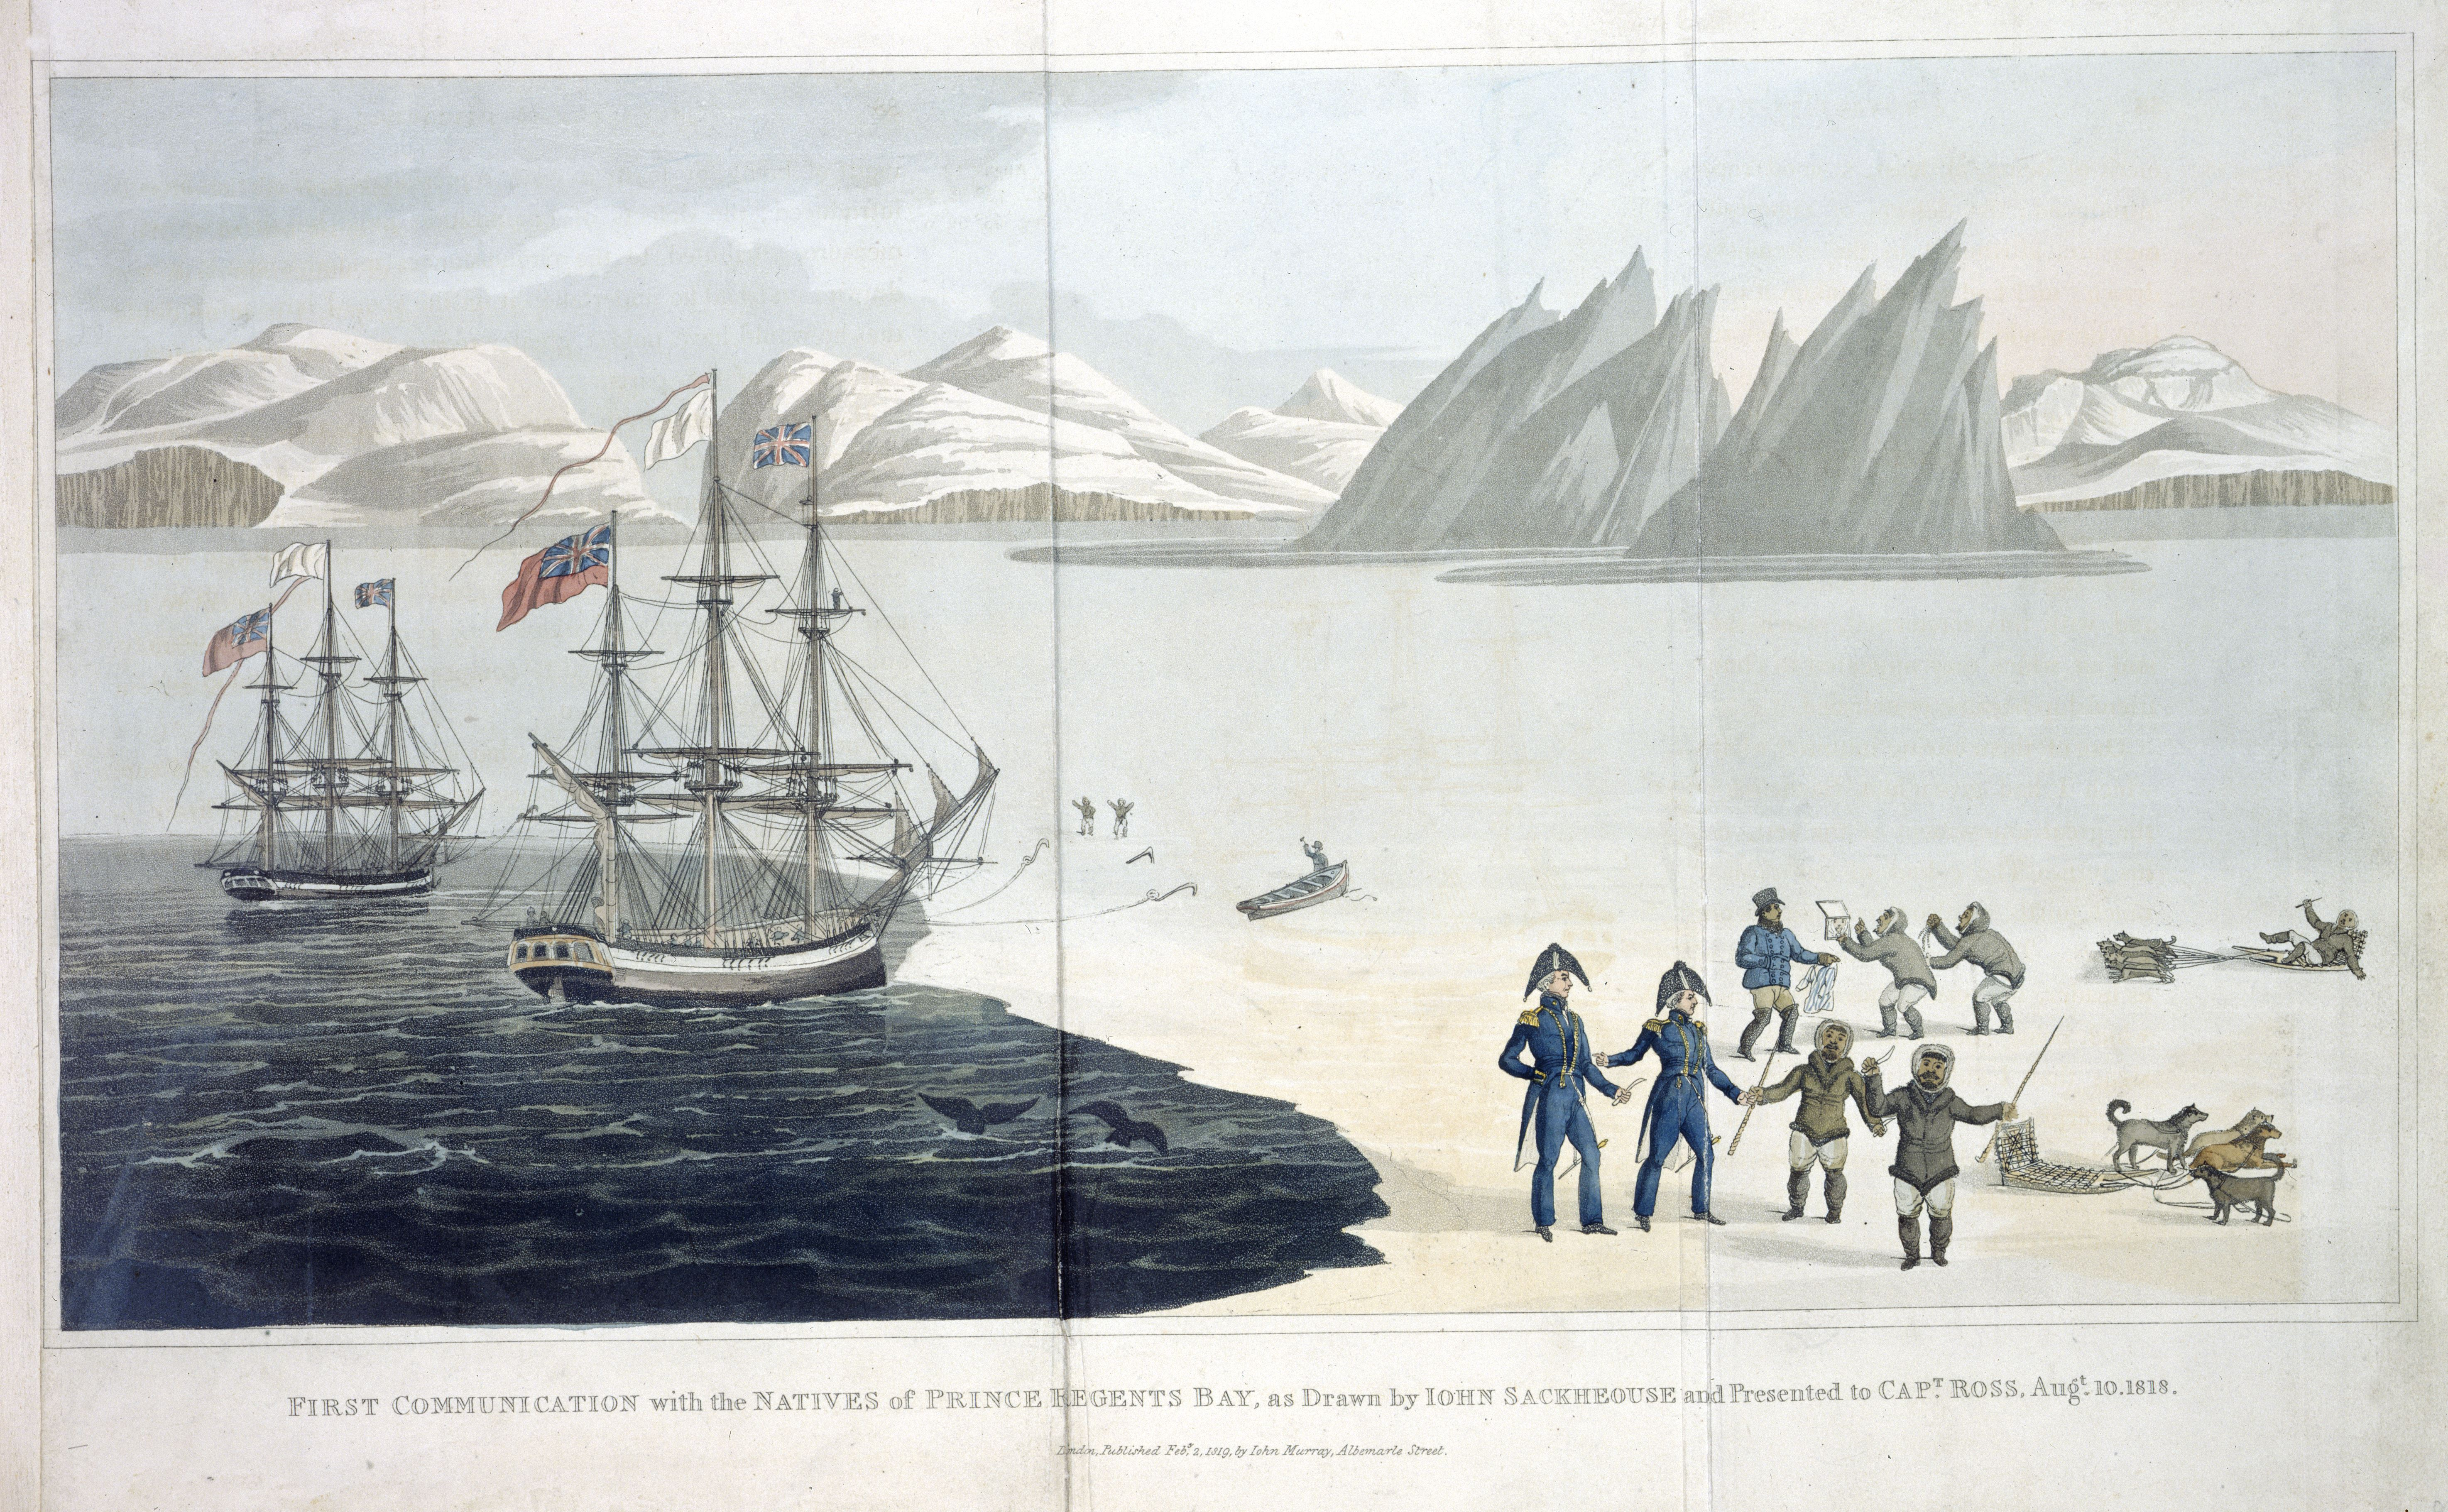 perspectives on the passage encountering the explorers american